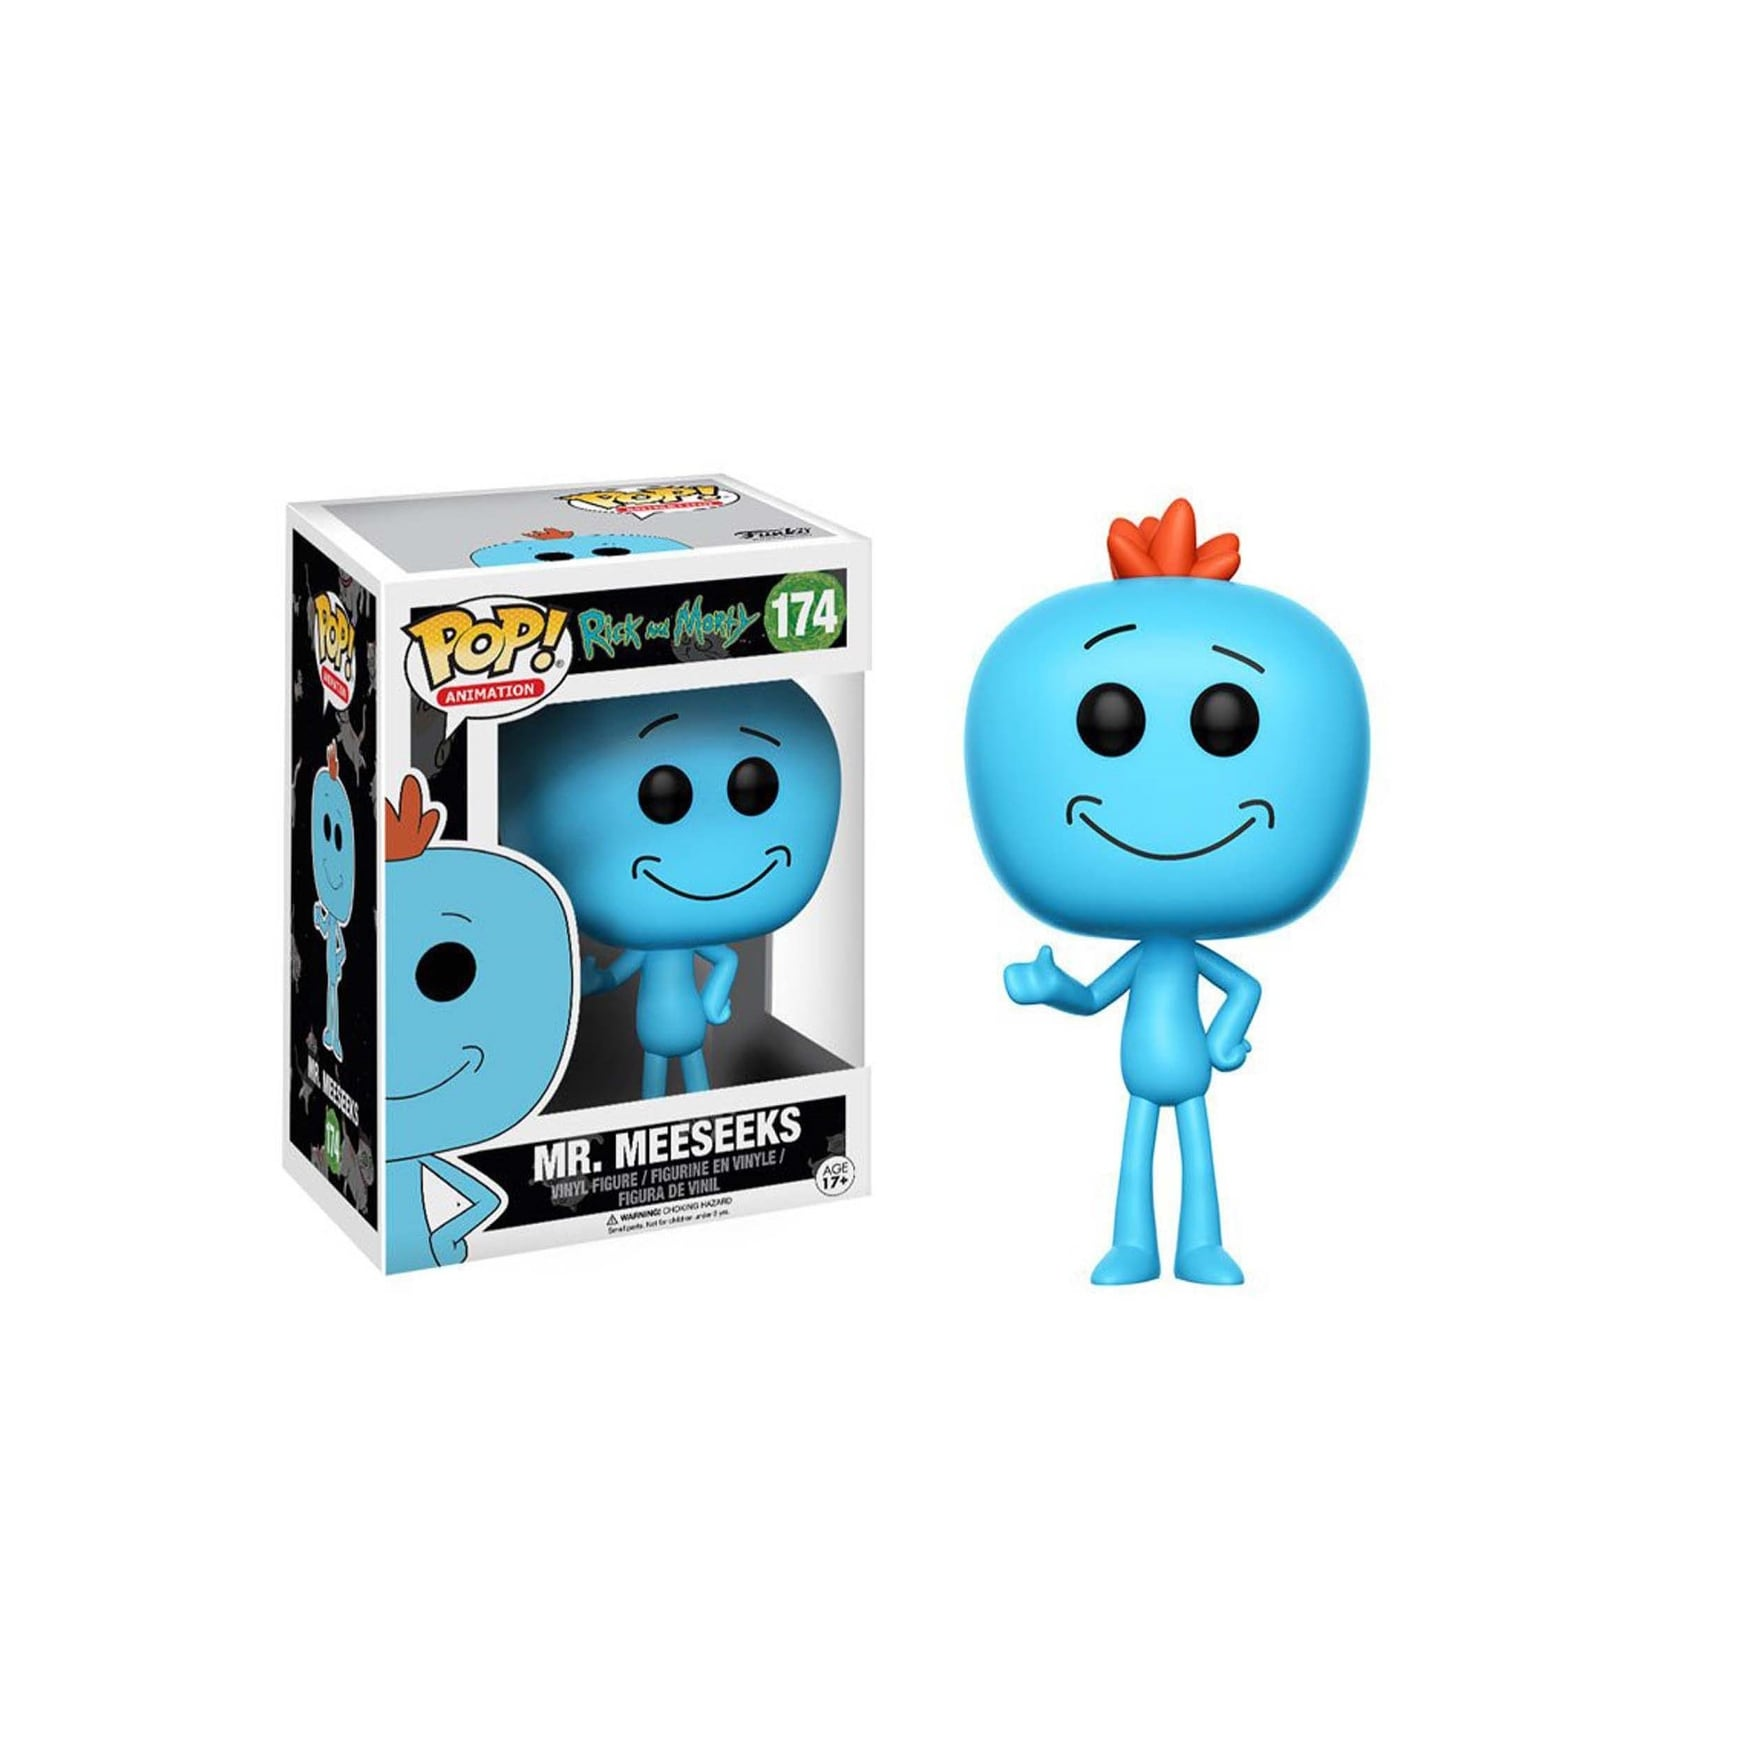 17c563e84ad Shop Rick and Morty Mr. Meeseeks POP! Vinyl Figure - Free Shipping On  Orders Over  45 - Overstock - 19885593